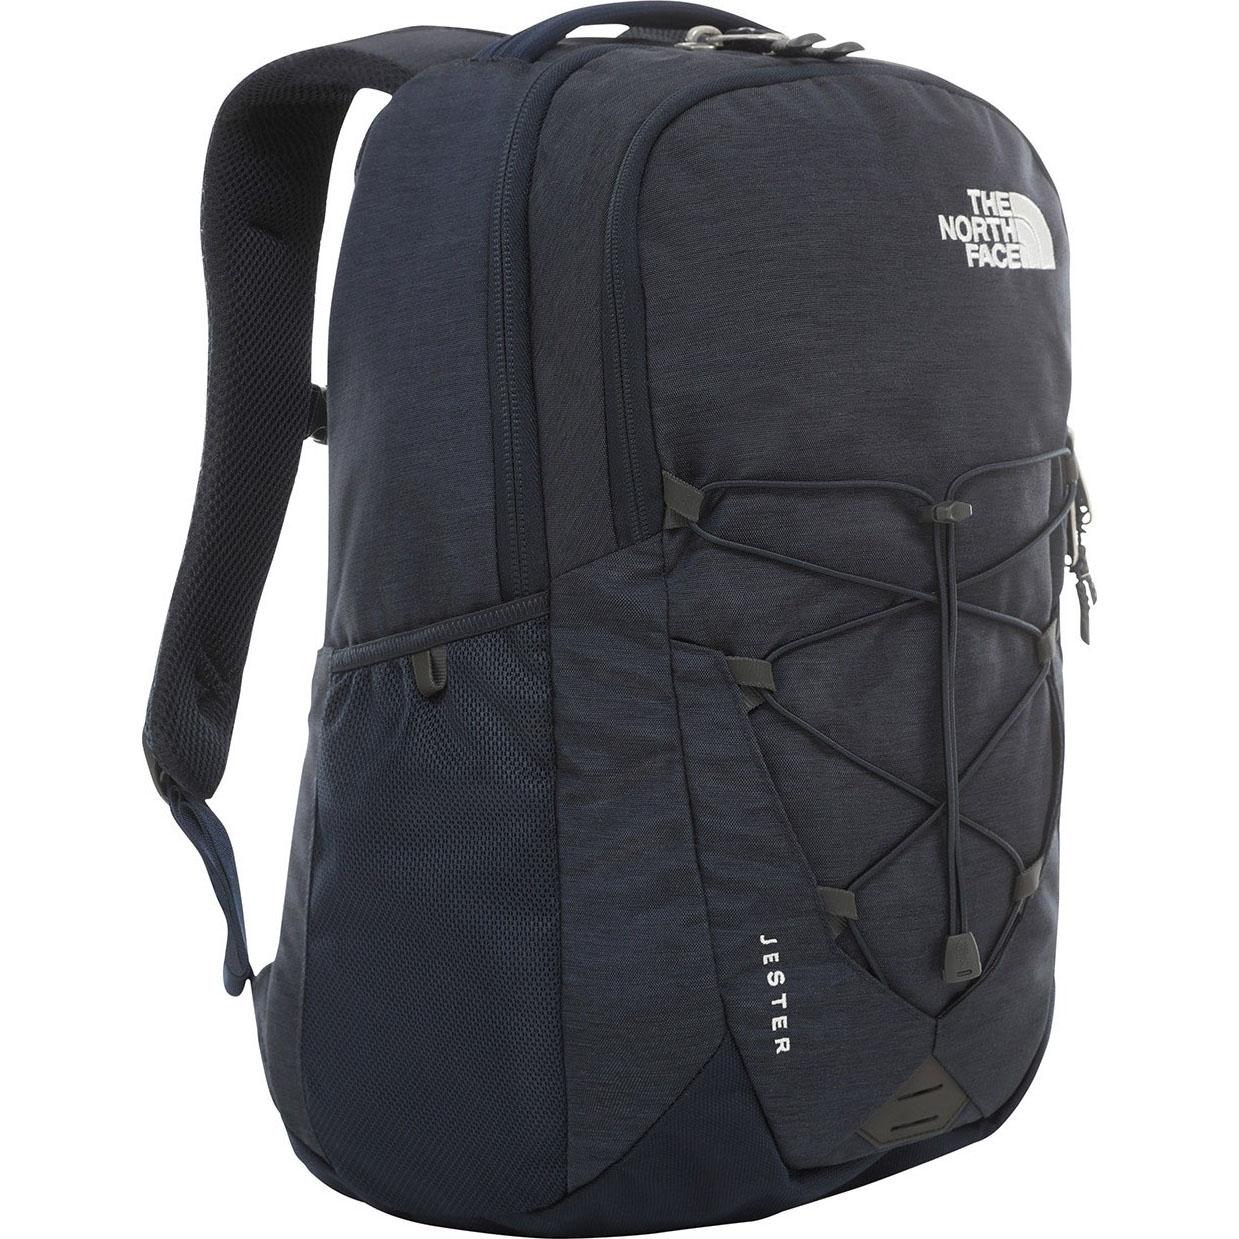 Fotografie Rucsac The North Face Jester, Blue/White